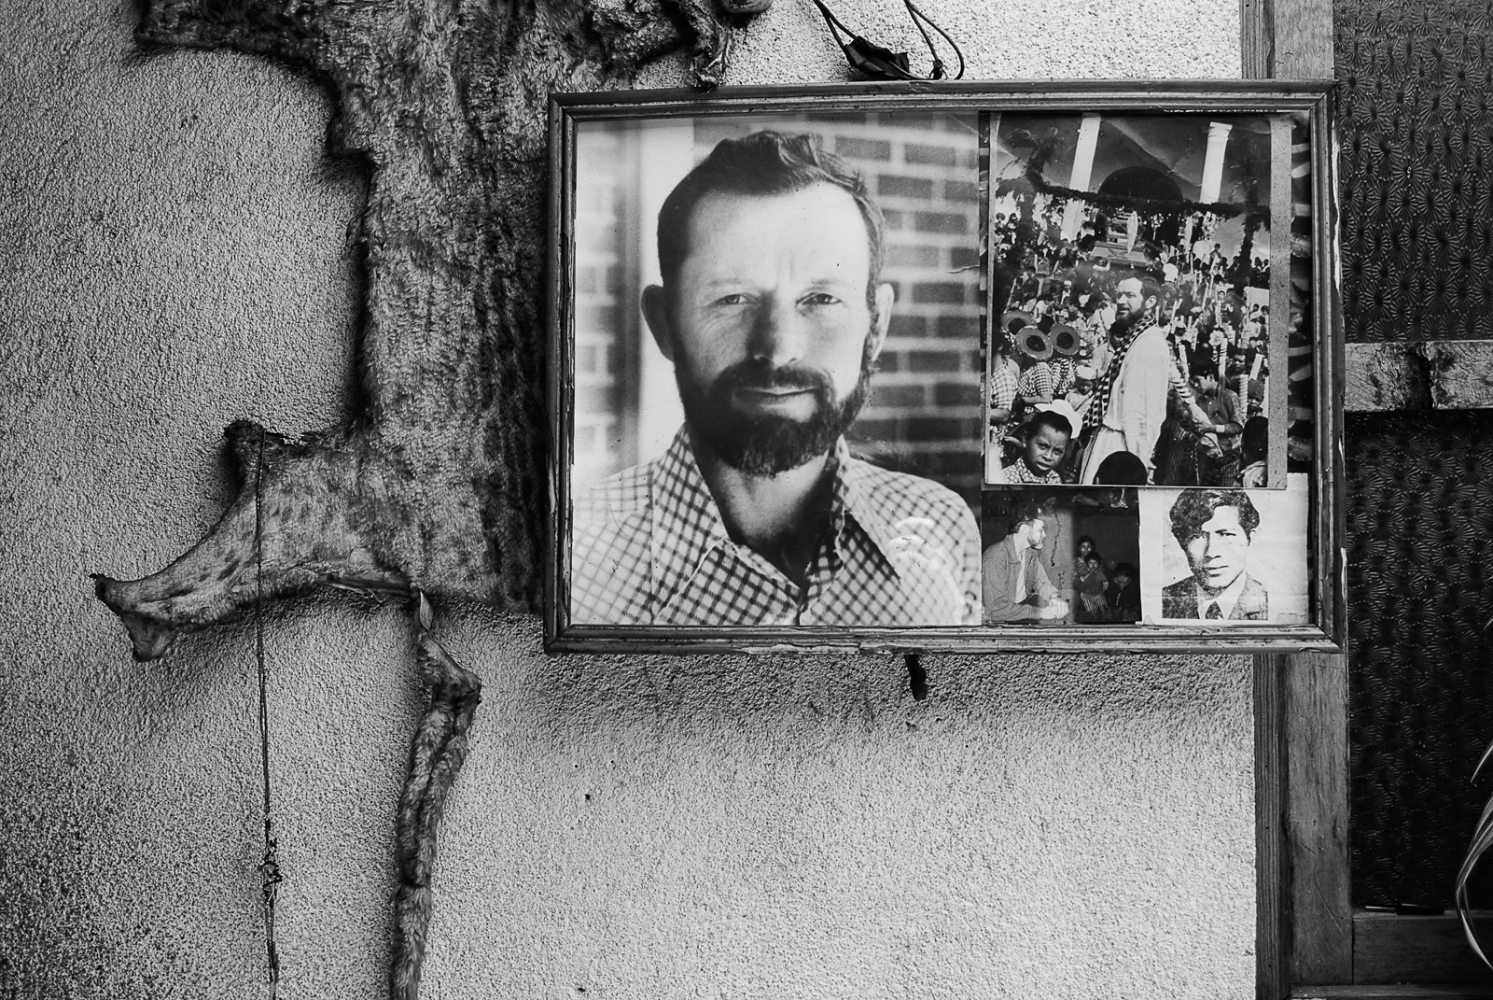 Photograph of martyred American priest Stanley Rother on a wall in Santiago Atitlán. During the war, he spoke out against the military's atrocities and gave sanctuary to those fleeing the death squads. He was killed by the army in 1981.